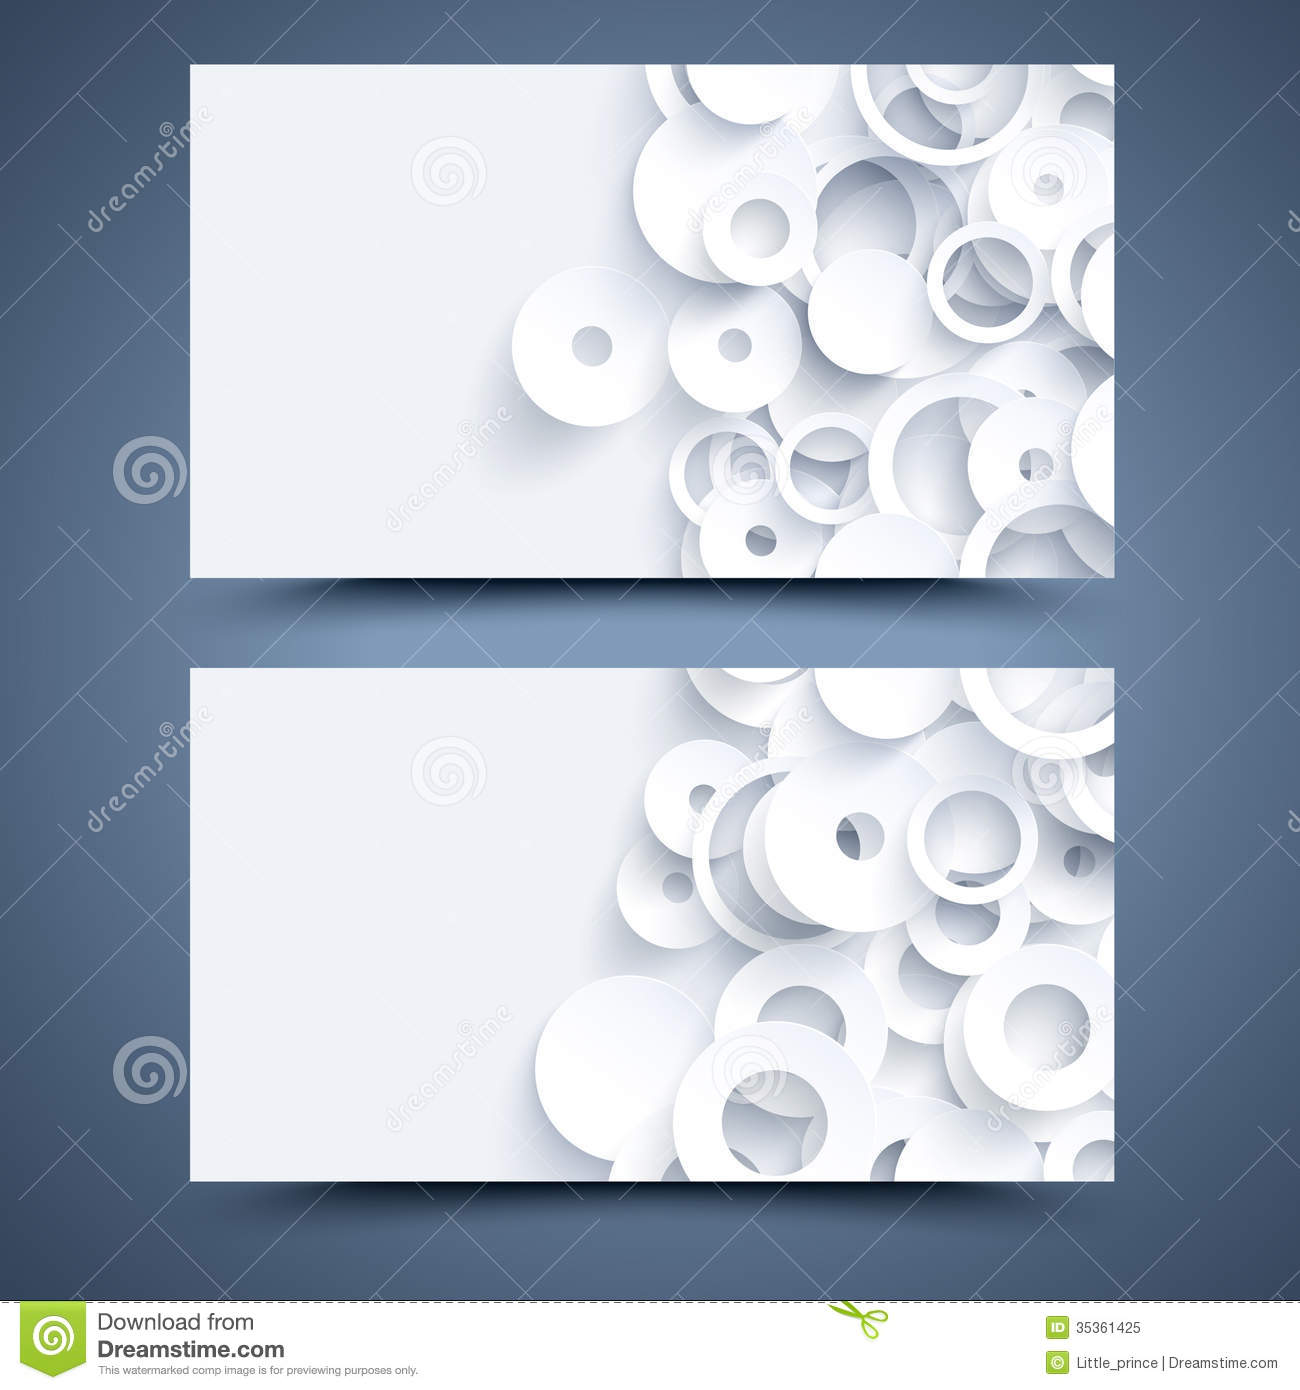 White business card template abstract background royalty for Front and back business card template